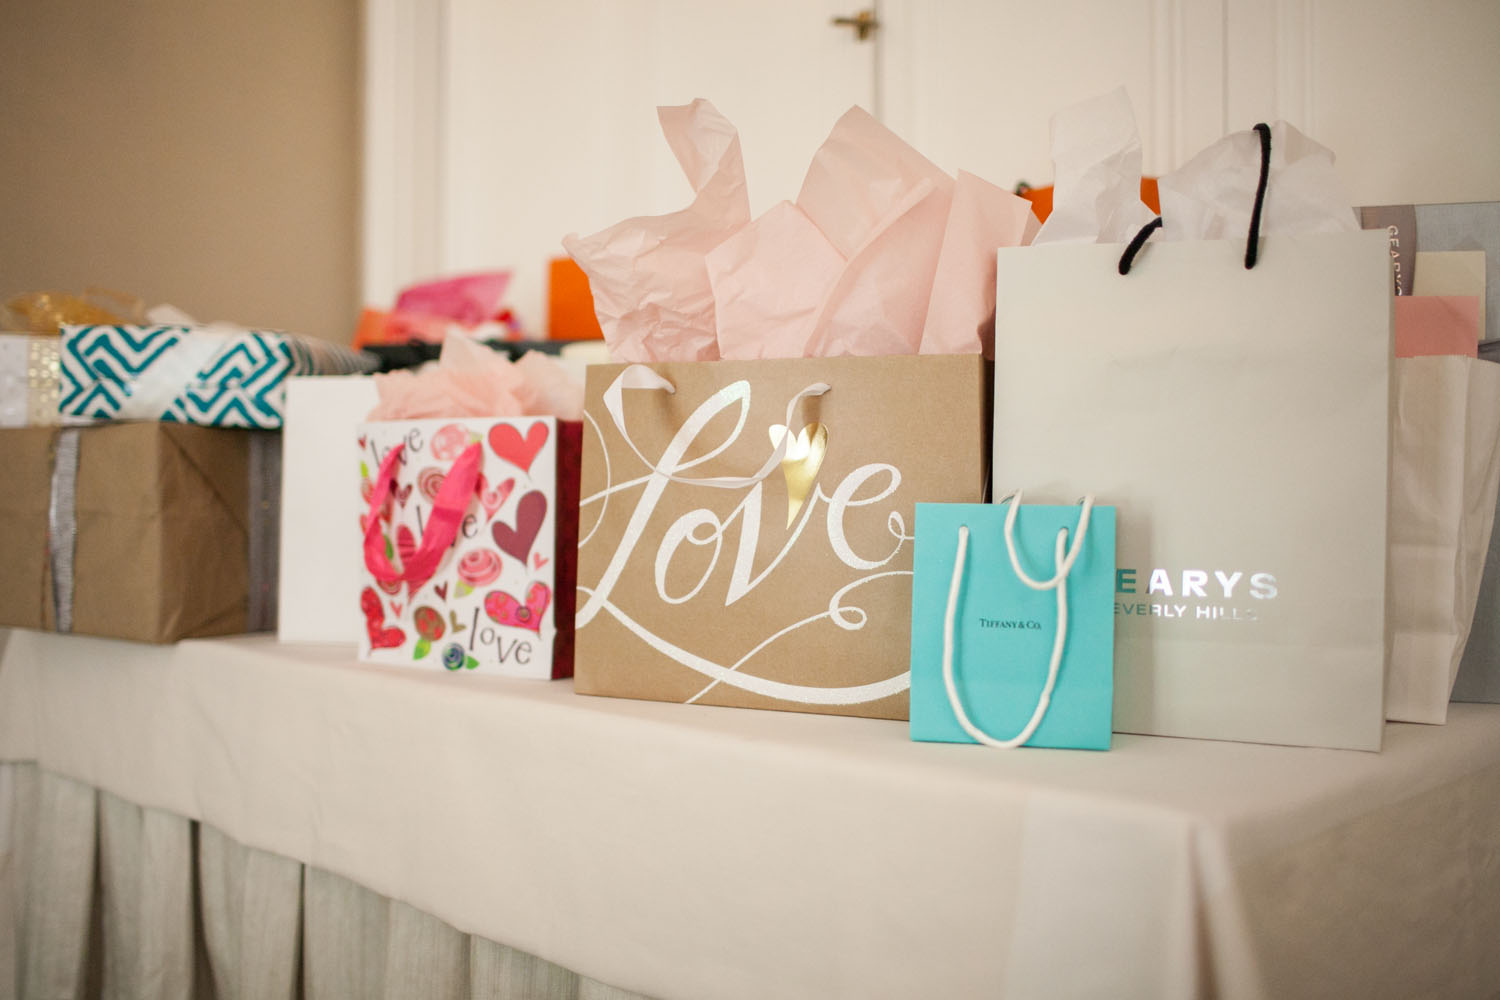 Bridal shower wedding registry gifts on table gearys tiffany love bags